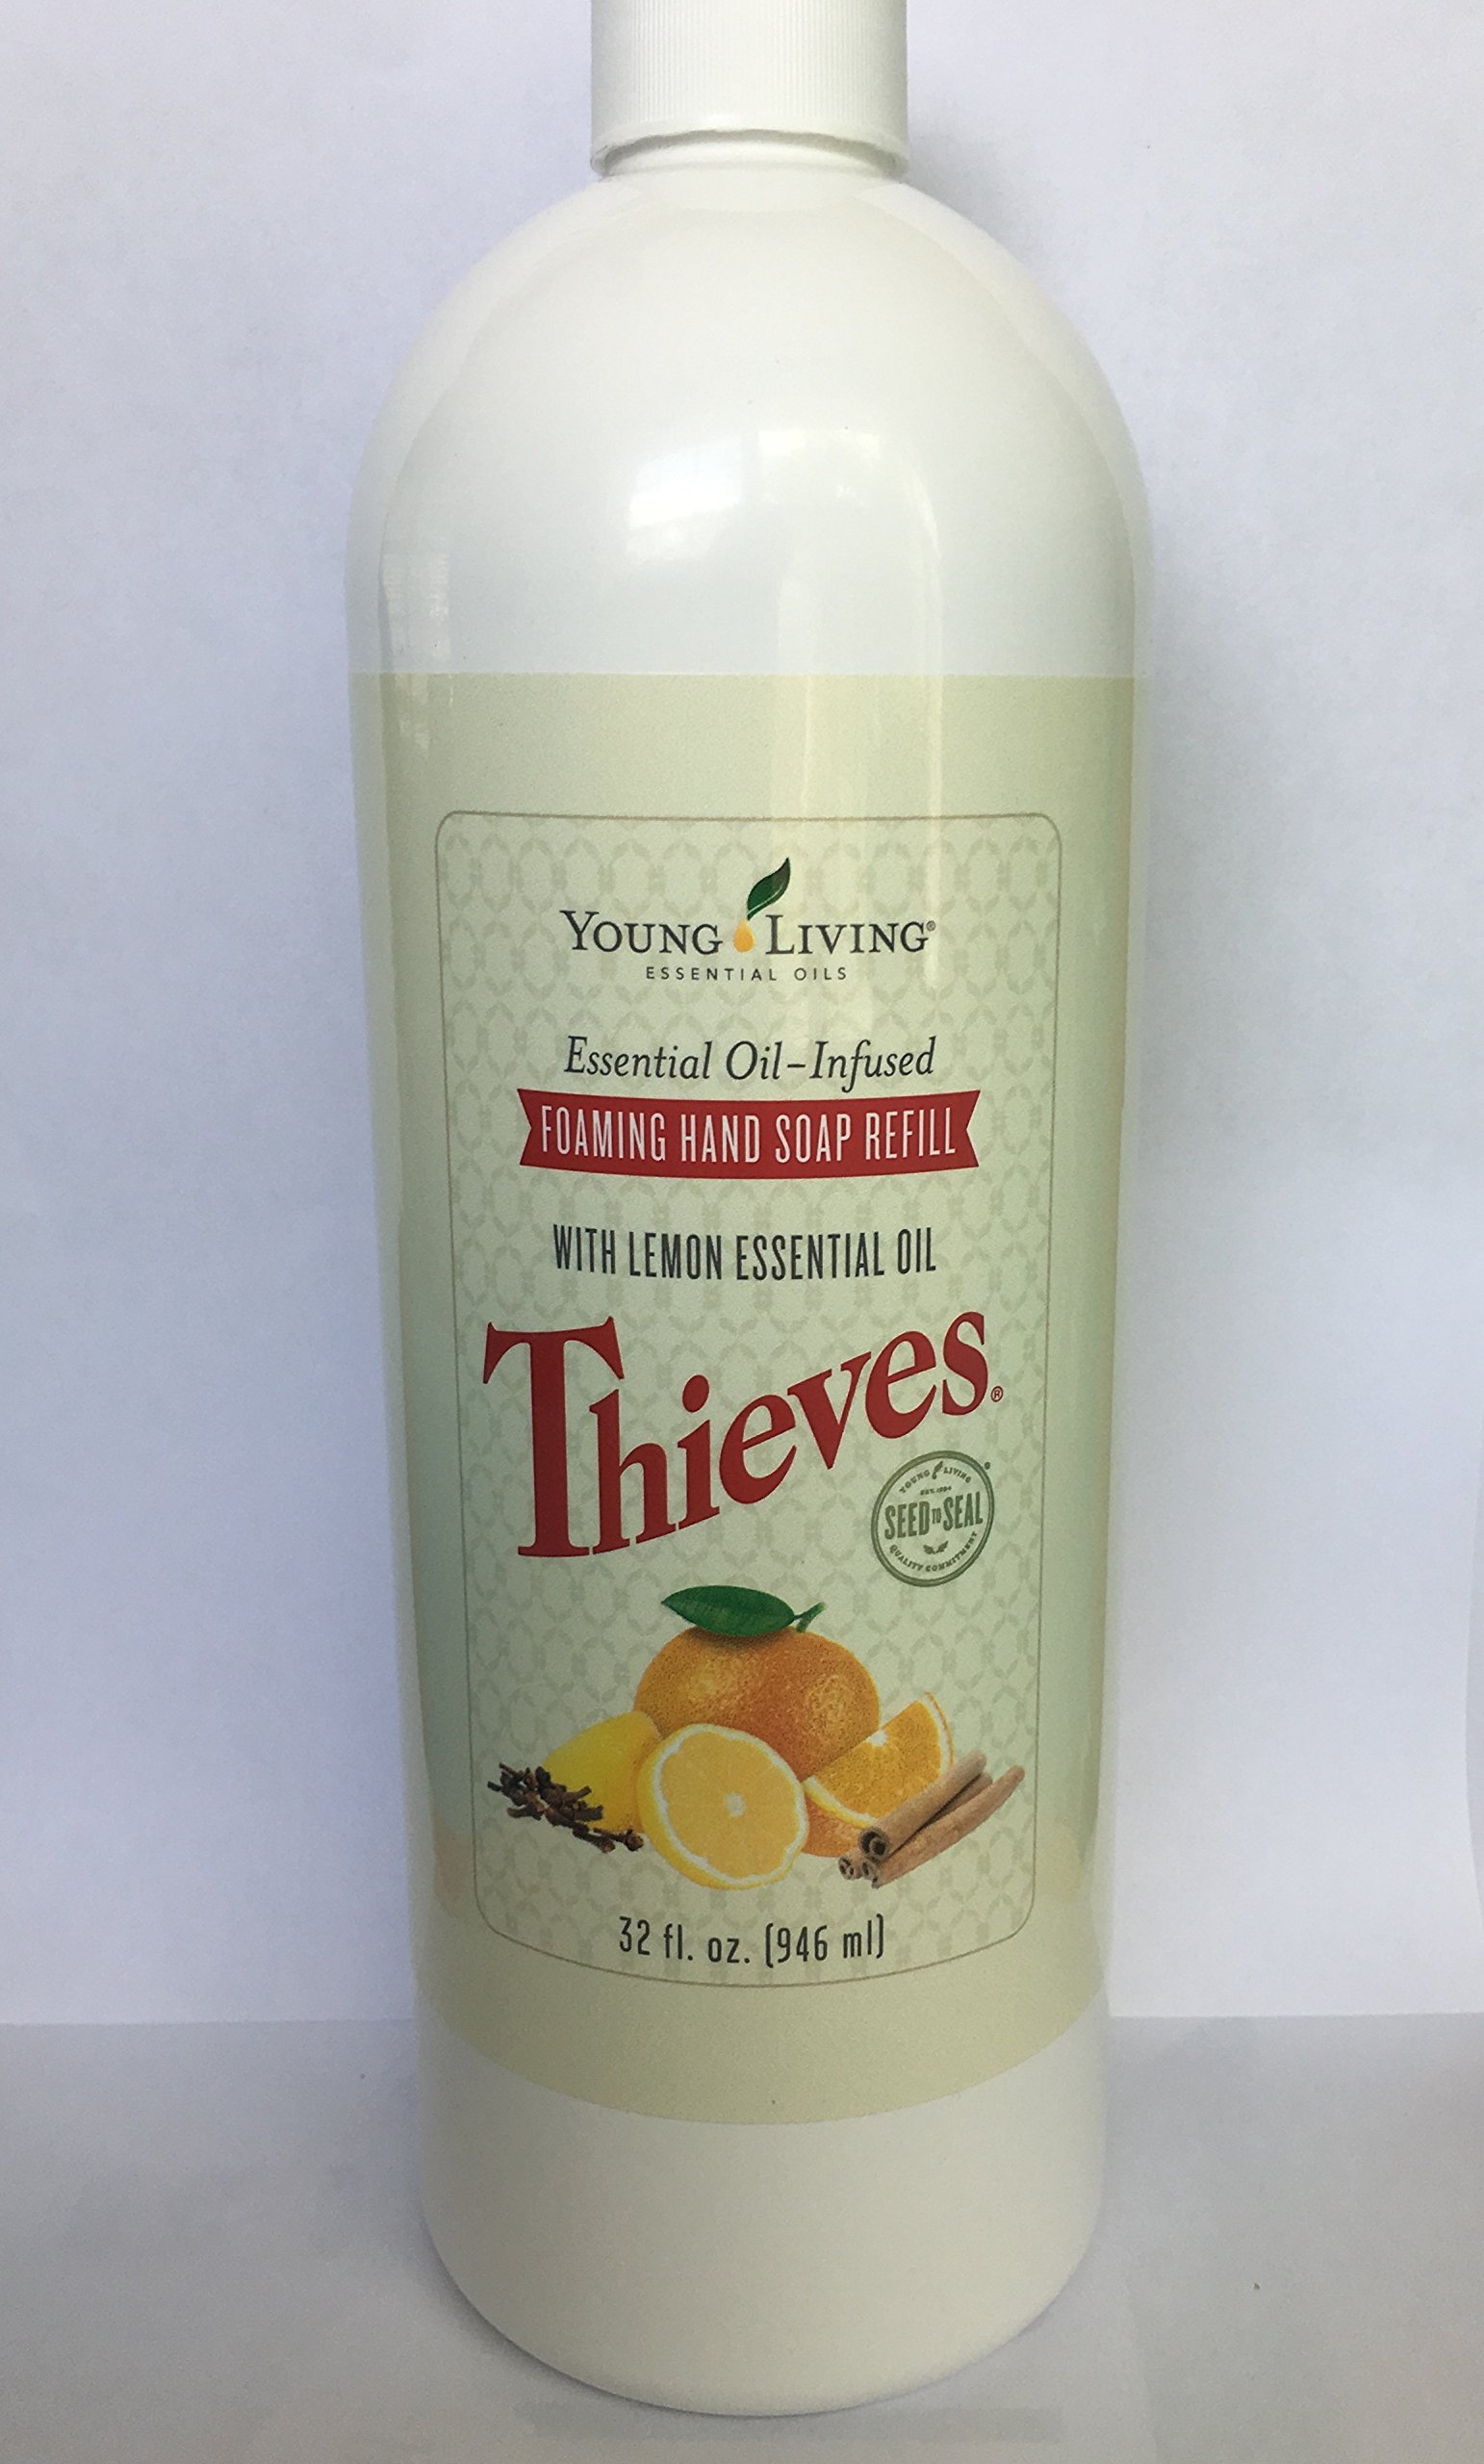 Thieves Foaming Hand Soap Refill - 32 oz by Young Living Essential Oils